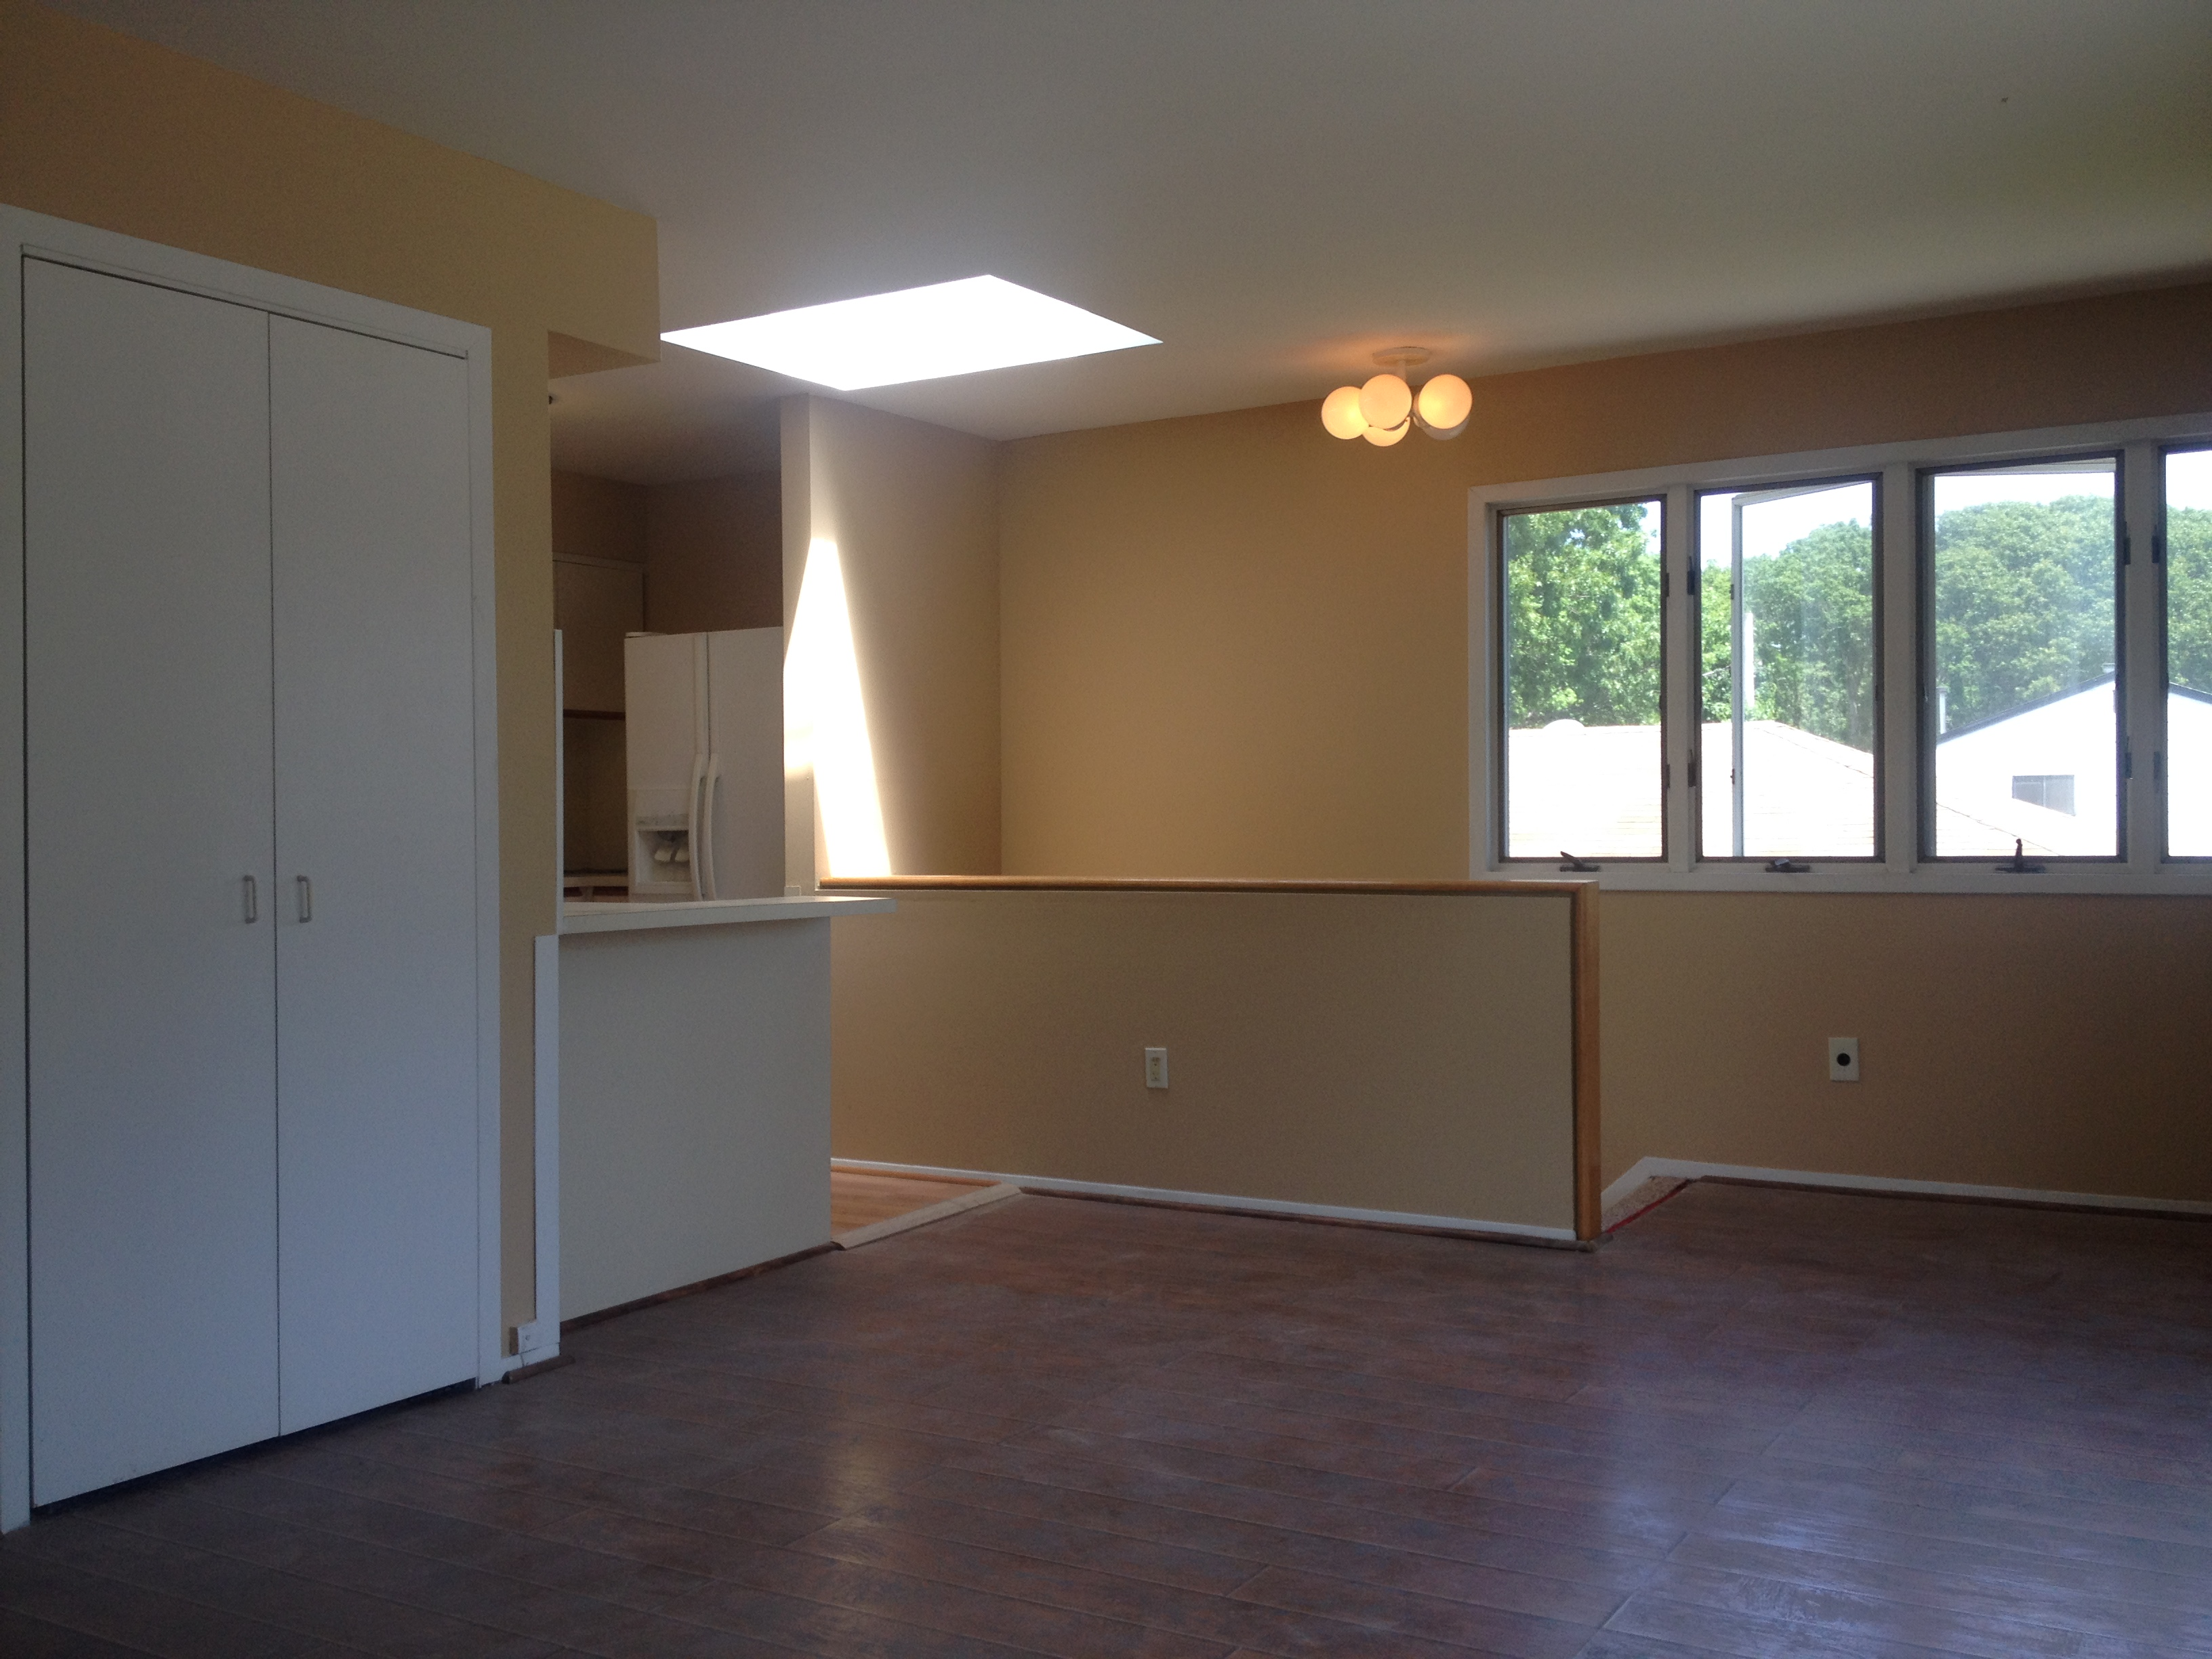 Beautiful 1 Bedroom Apartment Includes Heat, Hot Water and Internet.  Kitchen Includes A Large Refrigerator, Range and Dishwasher.  Unit Also Comes With Washer and Dryer And Private Entrance.  Available Immediately.